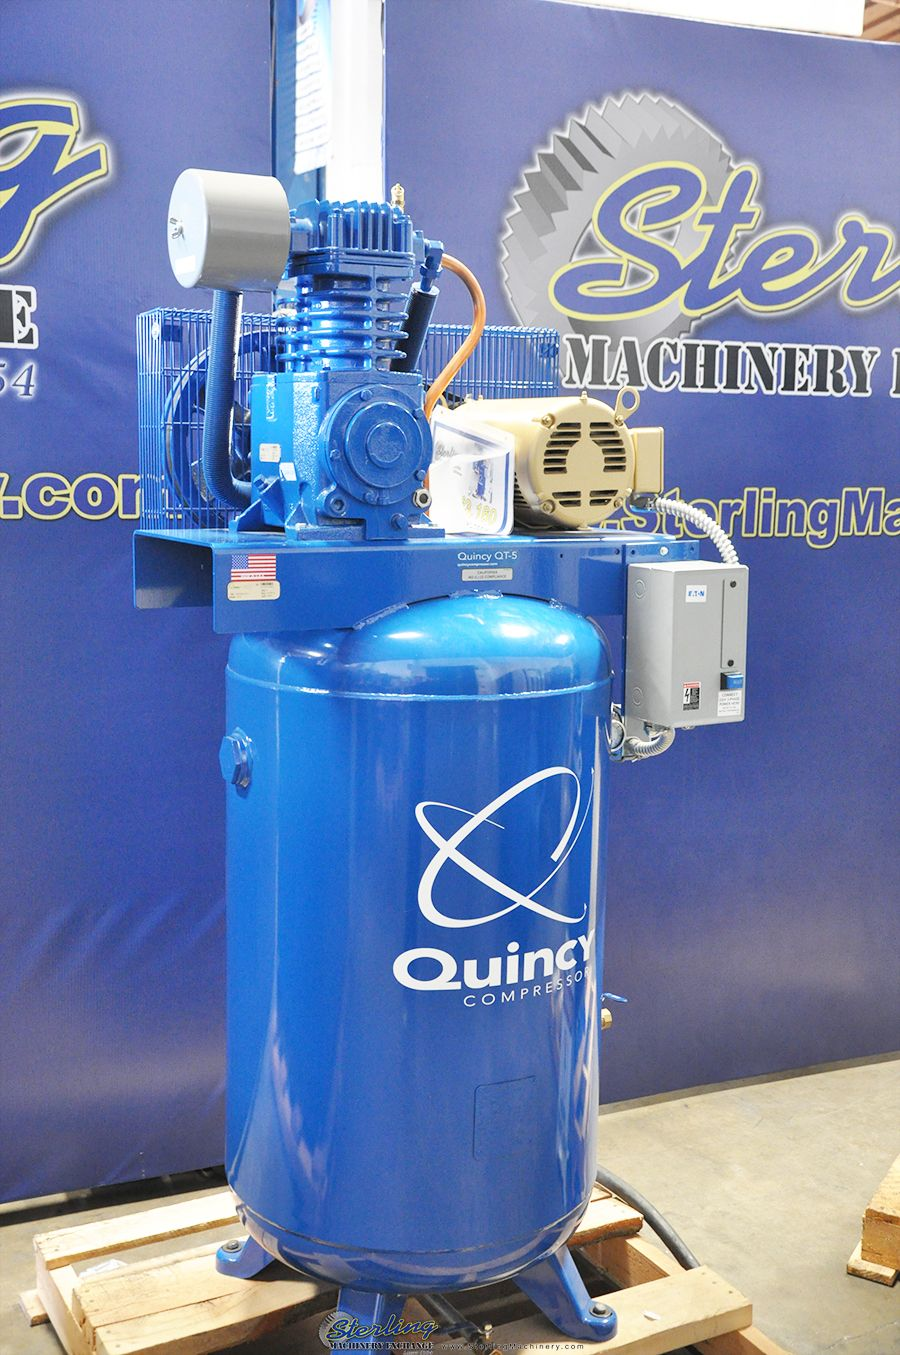 17 CFM Brand New Quincy Reciprocating VERTICAL Air